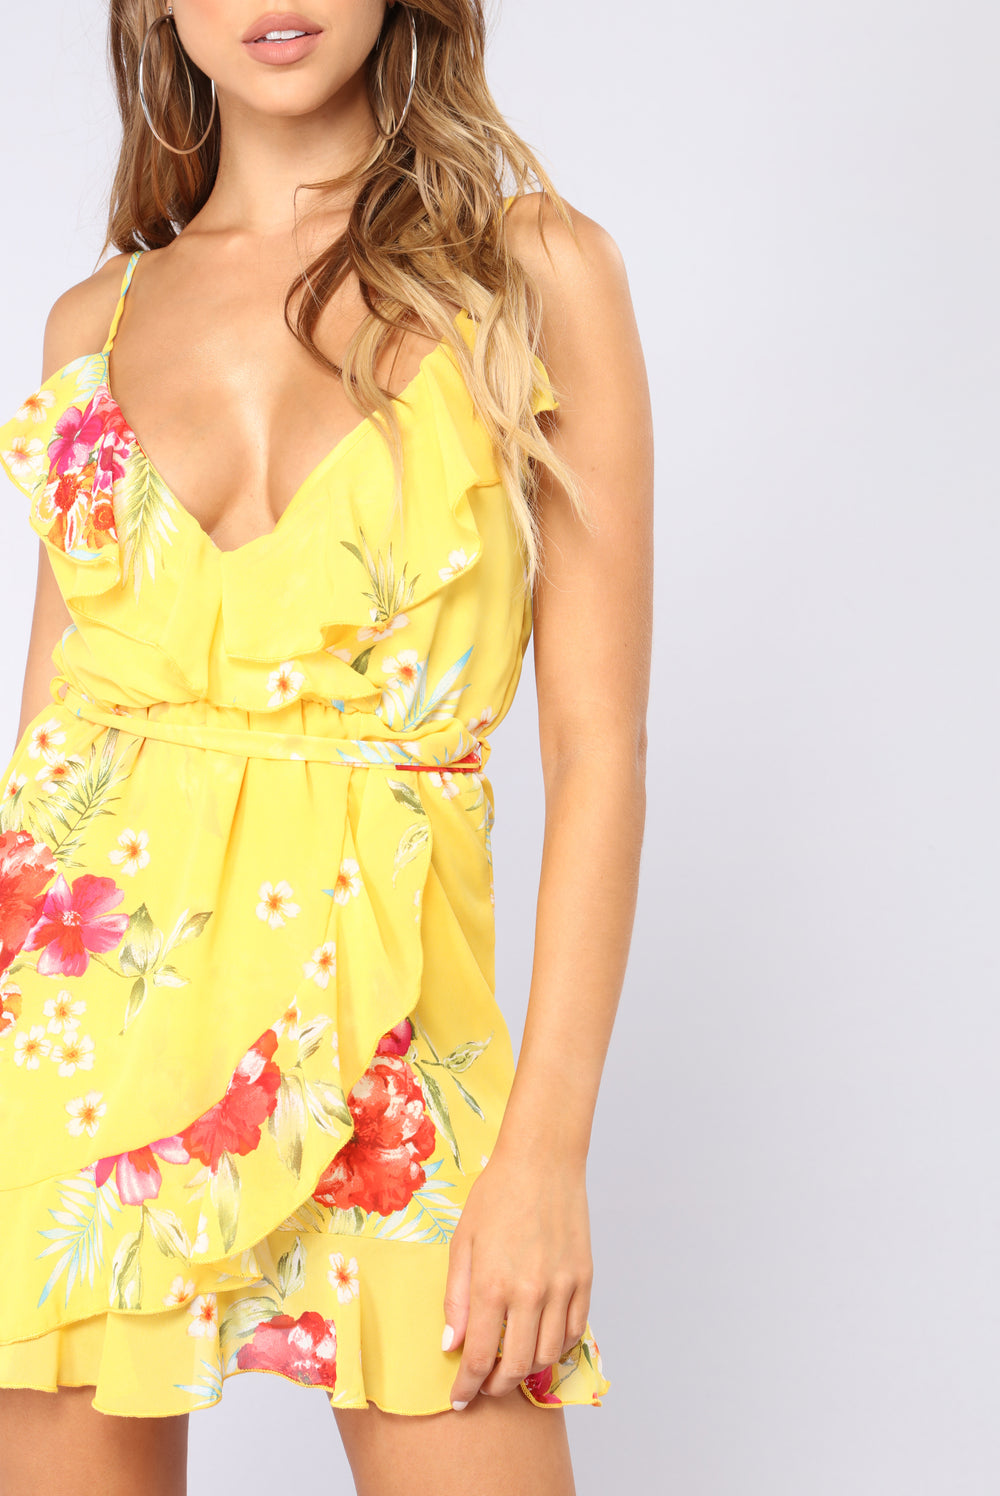 Flower Child Vibes Ruffle Dress - Yellow